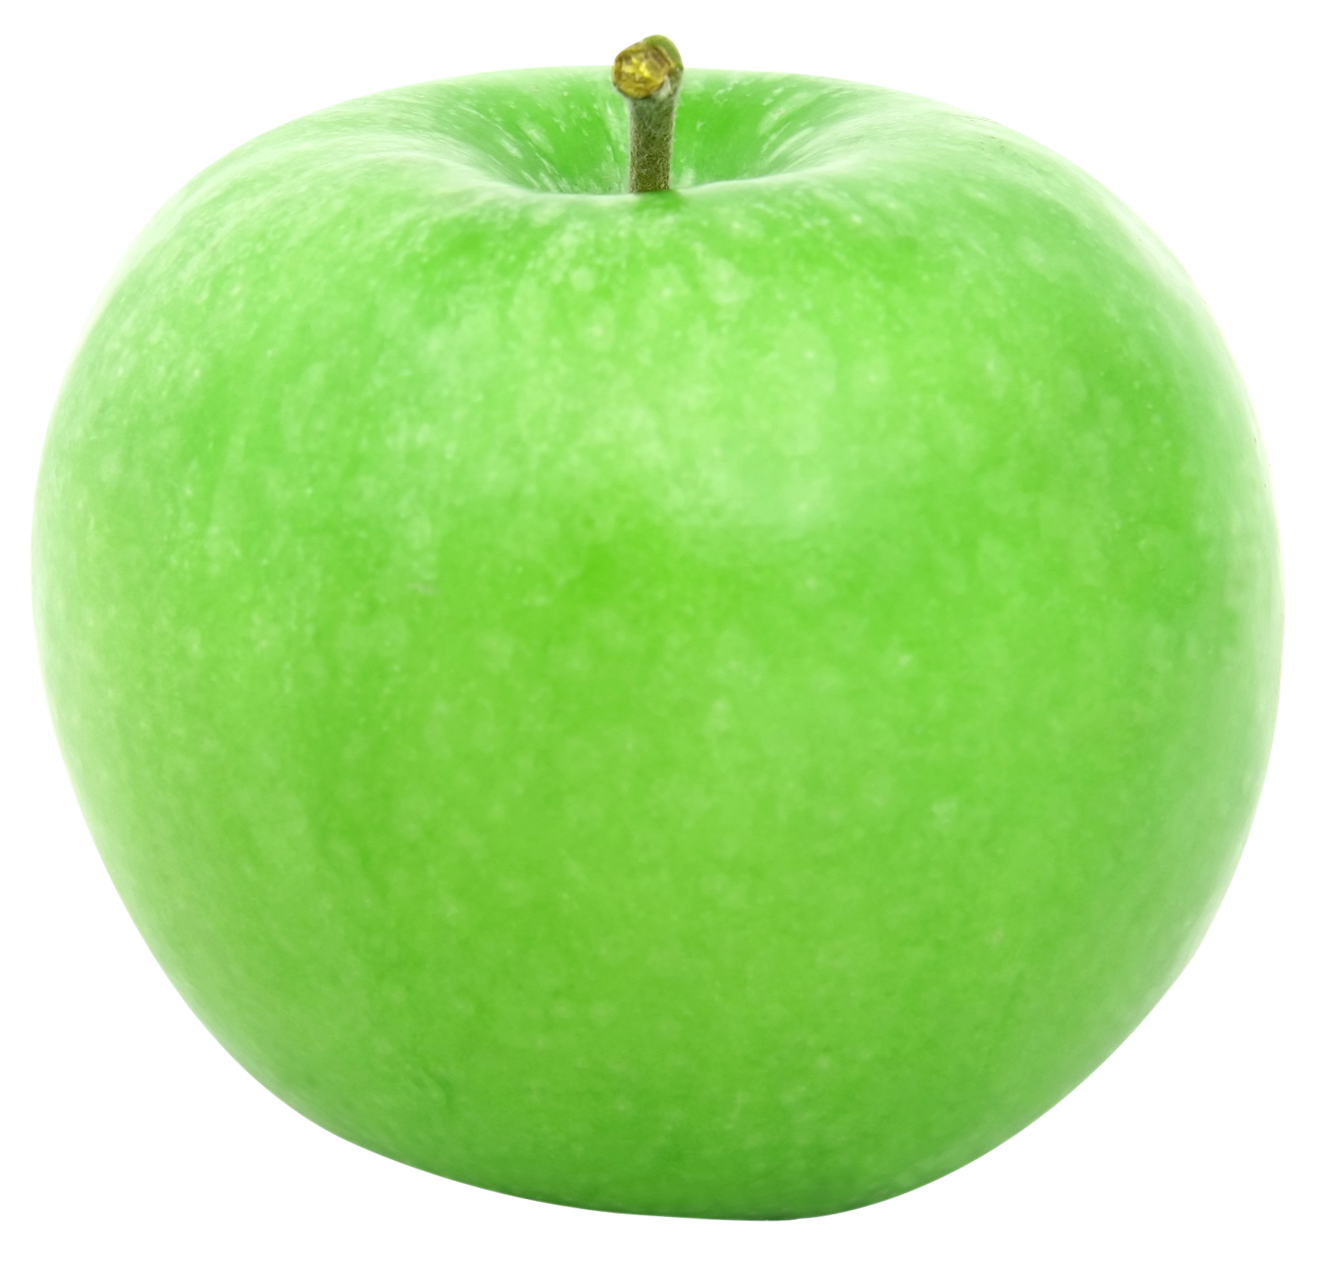 green apple png image pngpix #11680